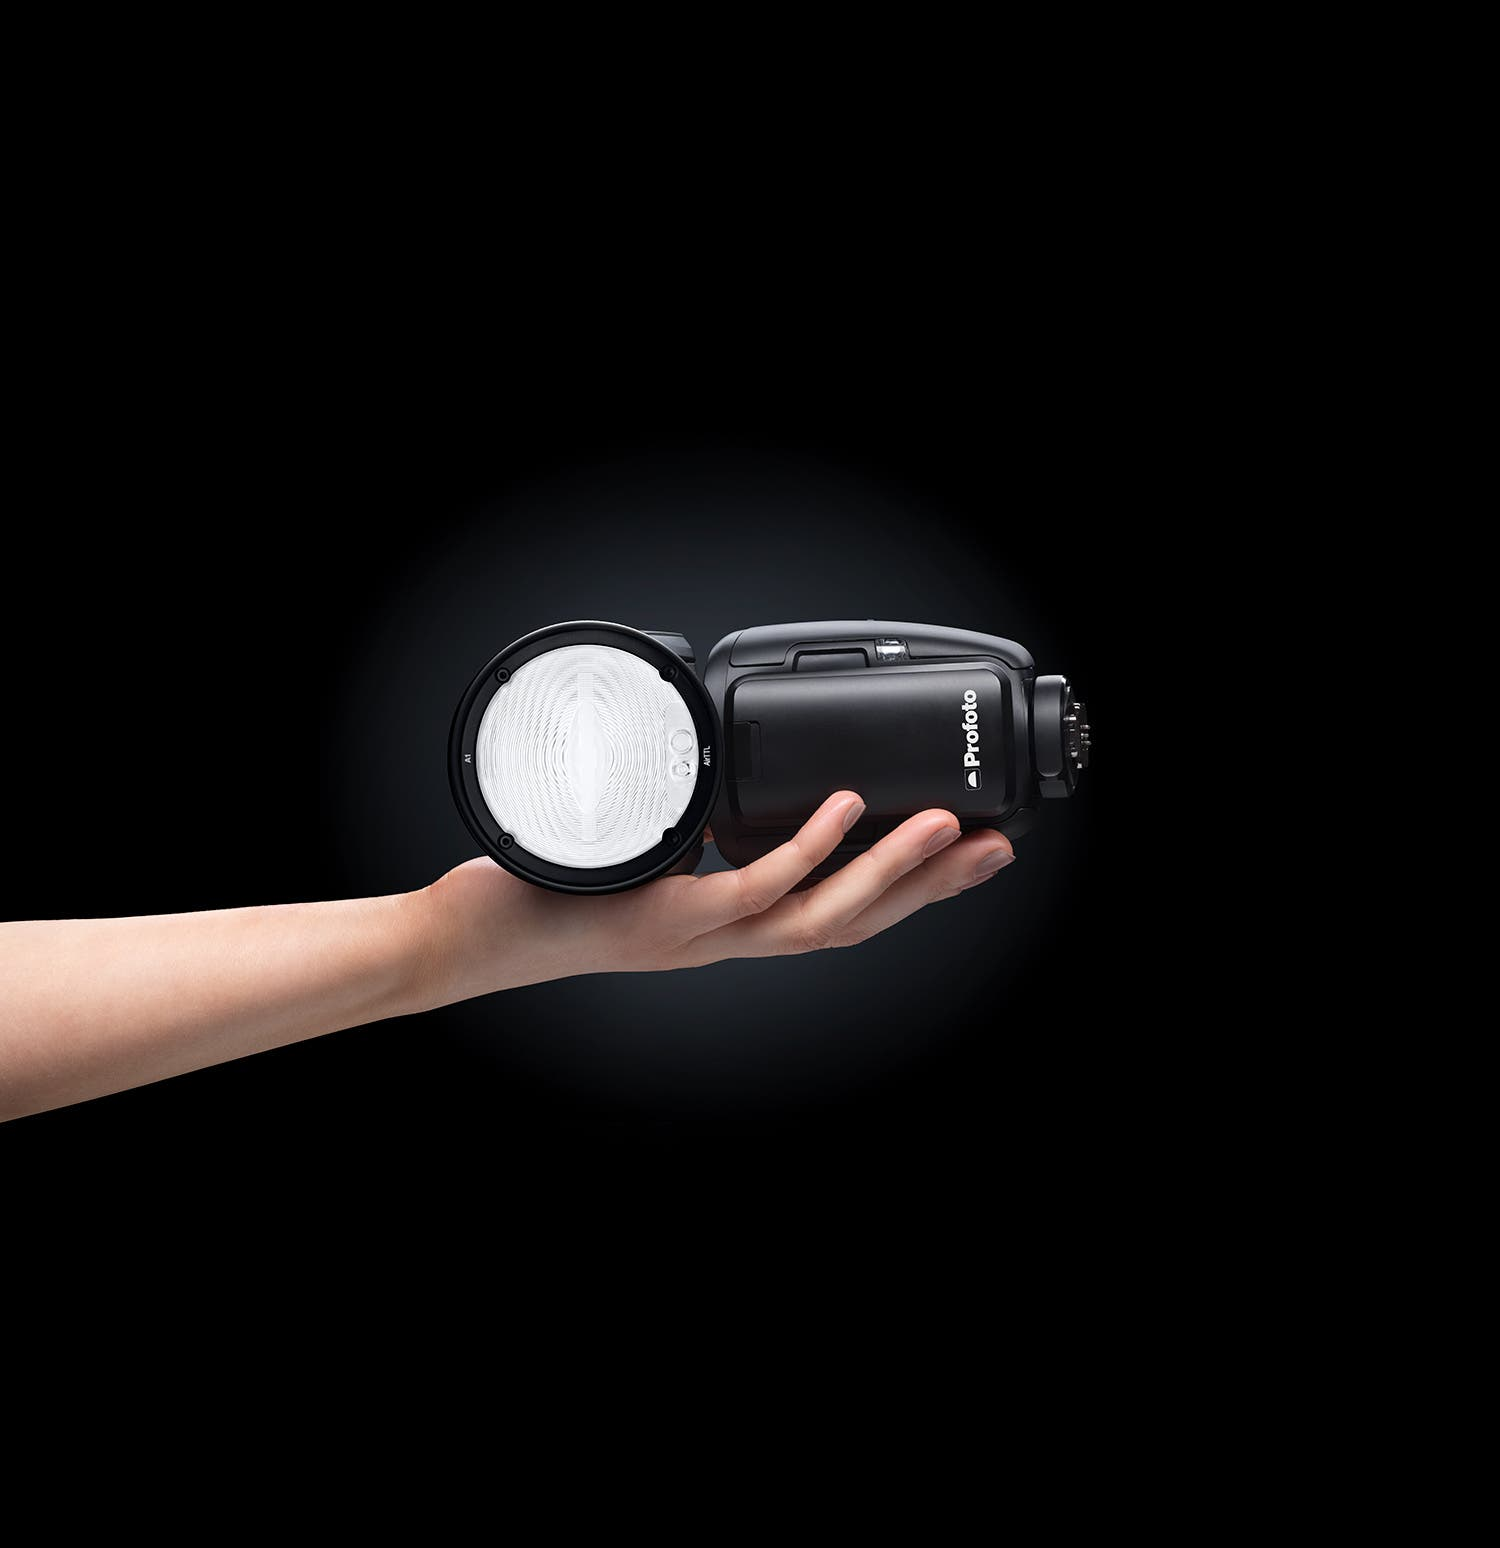 The Profoto A1 Is Small Studio Light Weve Always Wanted Tiny Efficient High Power Led Camera Flash Solutions For Cell Phone Editors Note It Looks Like Will Be 995 Here In Us 76 Watt Seconds Of Were A Bit On Fence